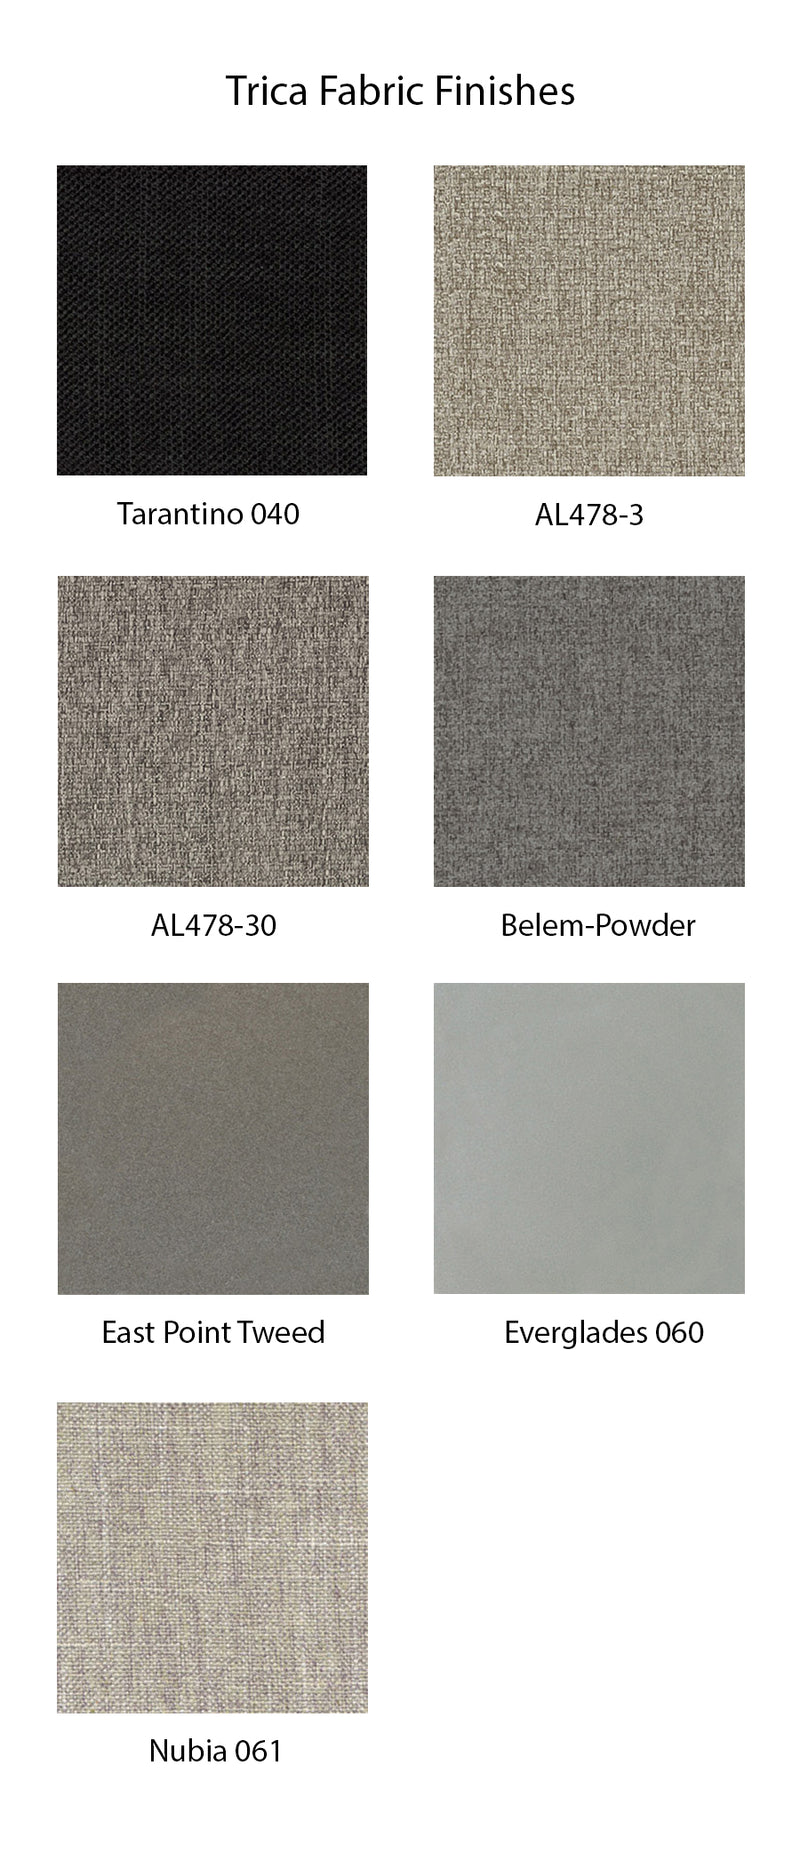 products/fabric-finishes-trica_38e83c23-4a02-406a-bd1c-c8a6955d84dd.jpg